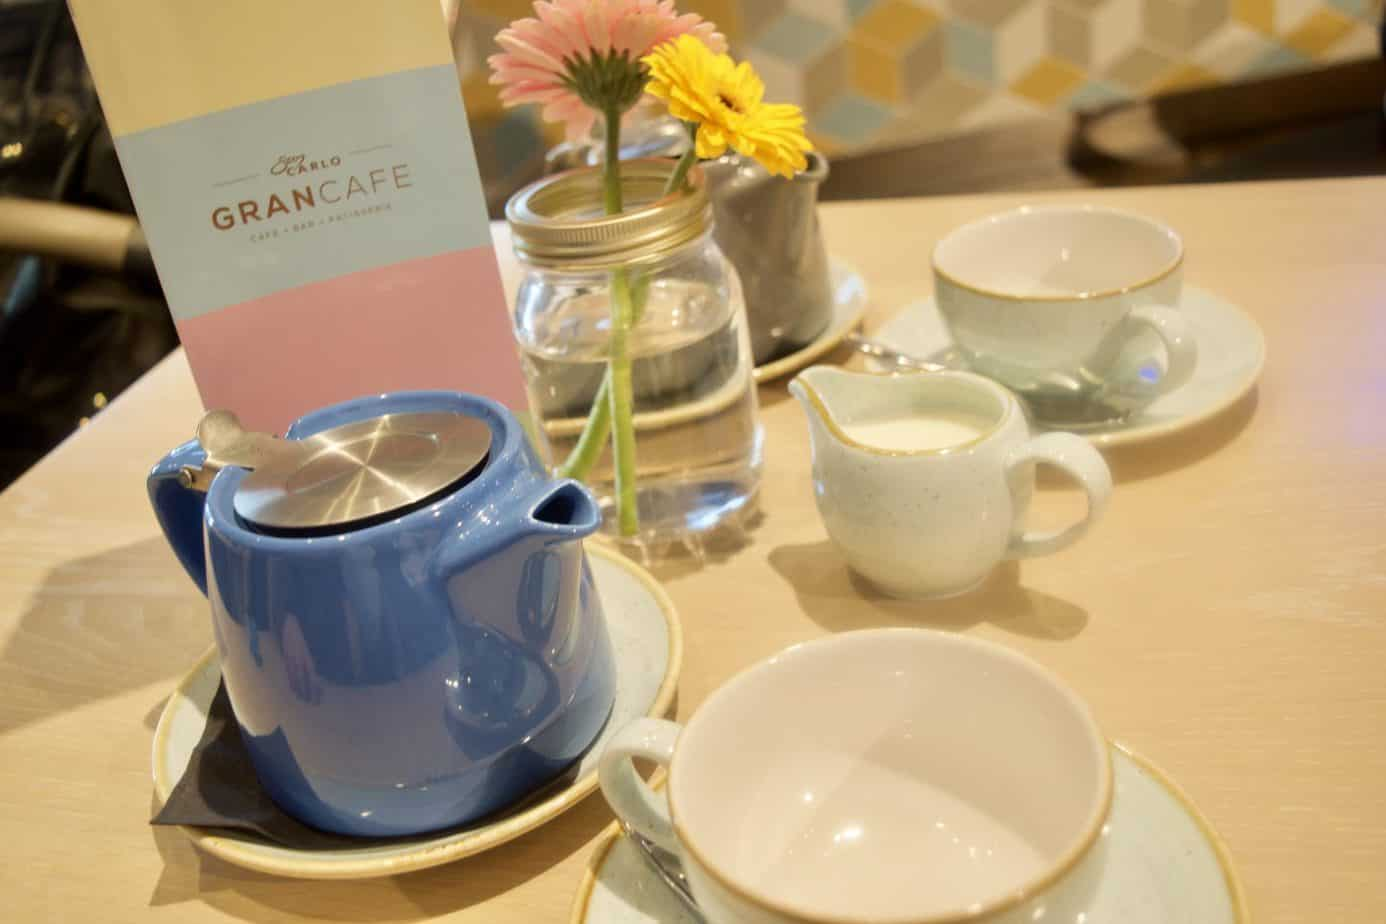 A table showing our cups and teapot at San Carlo Cafe in Selfridges Birmingham